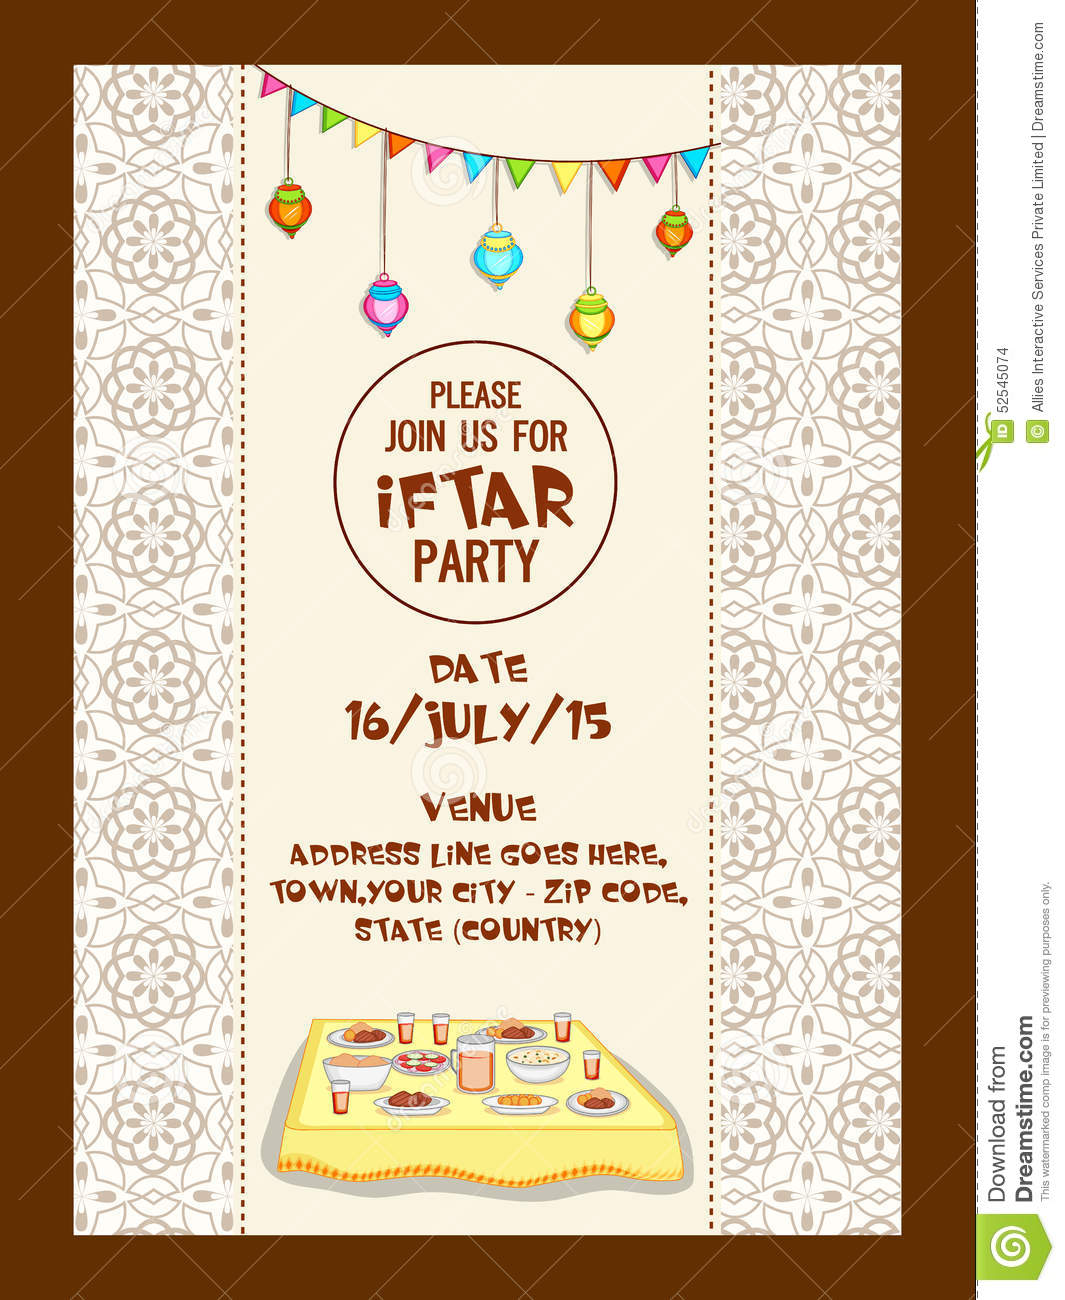 Ramadan kareem iftar party celebration invitation card design stock download ramadan kareem iftar party celebration invitation card design stock illustration illustration of holy stopboris Gallery